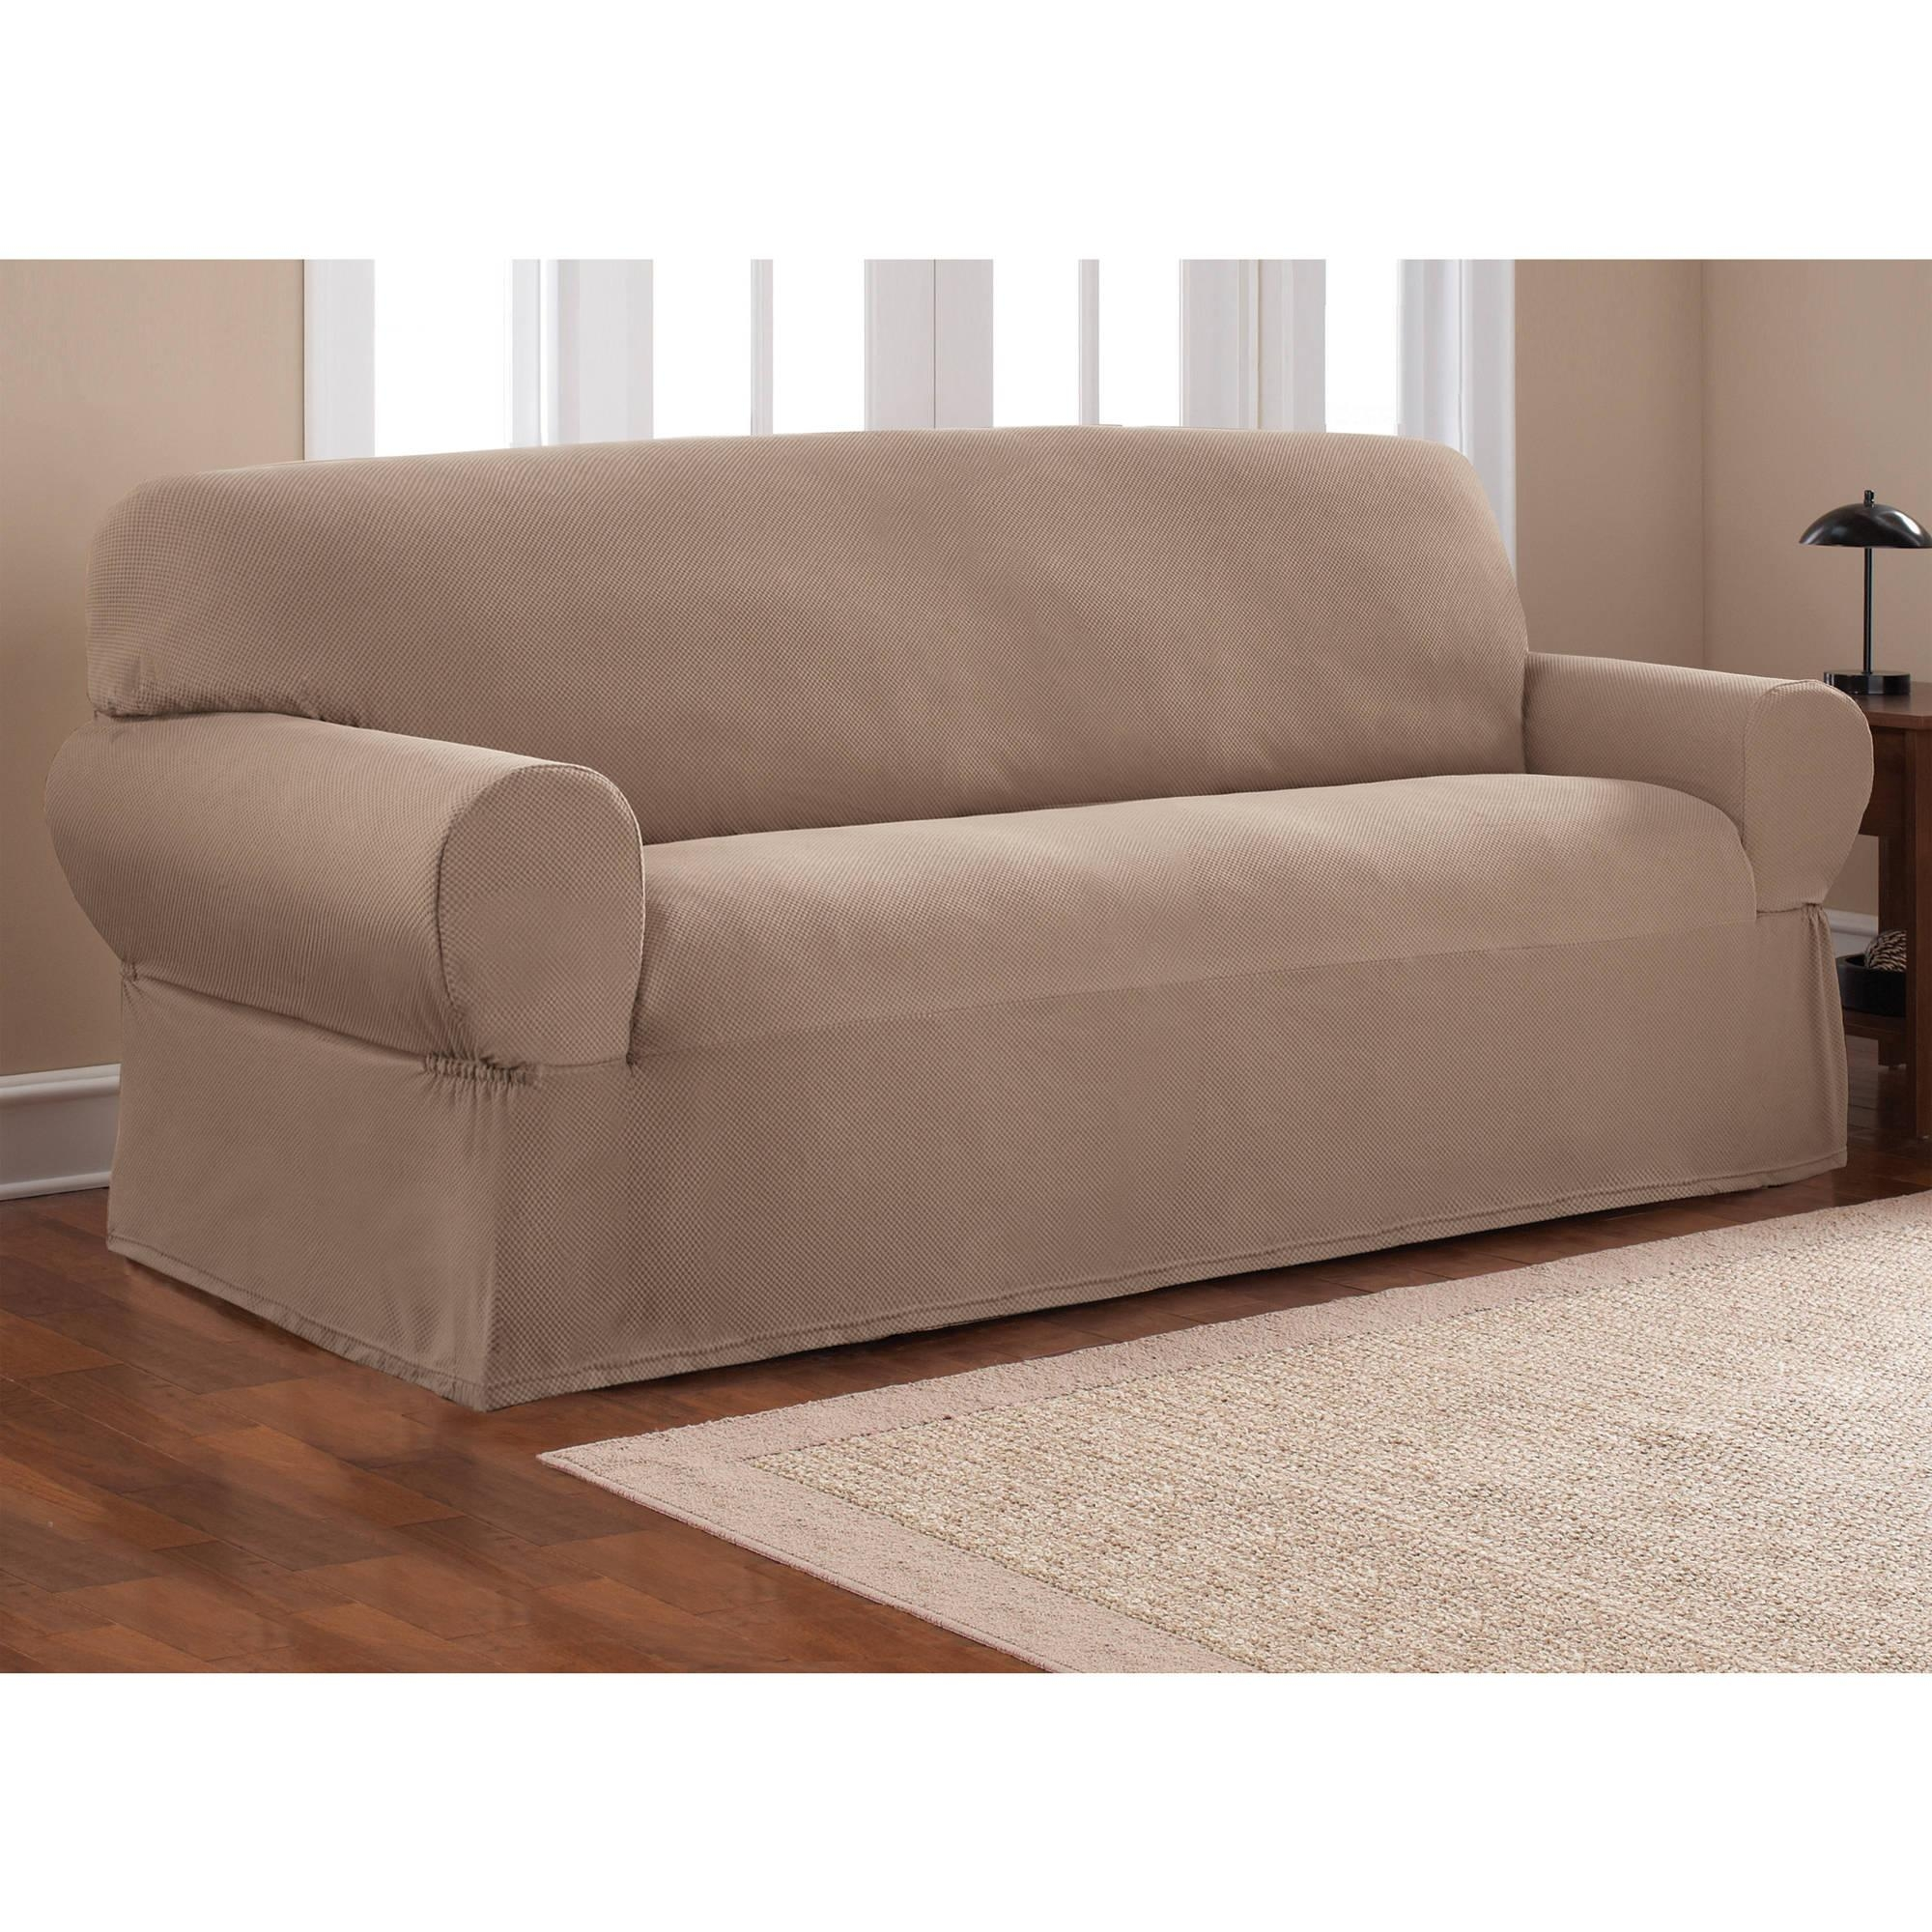 Sofas : Amazing T Cushion Loveseat Slipcover 3 Piece T Cushion Throughout 2 Piece Sofa Covers (View 12 of 27)